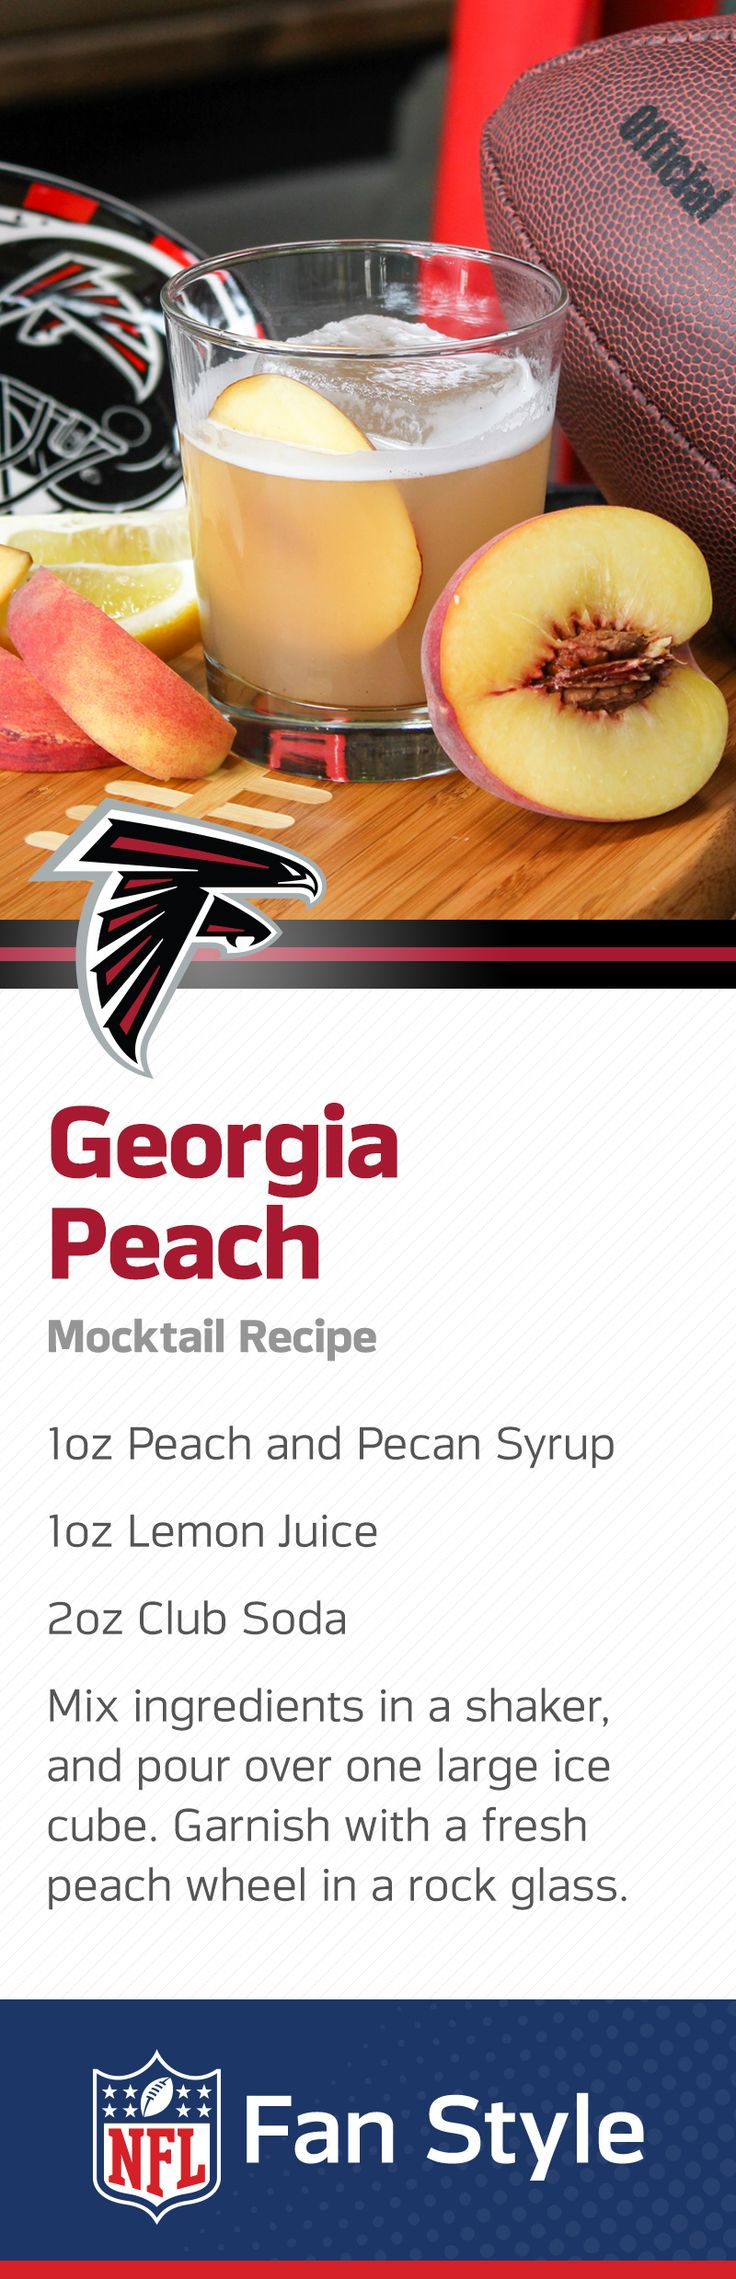 Everything is just peachy in Atlanta. When the Falcons take the field and your buddies come over for a good ol' fashion Homegate, serve up a tray of these peach and pecan mocktails.